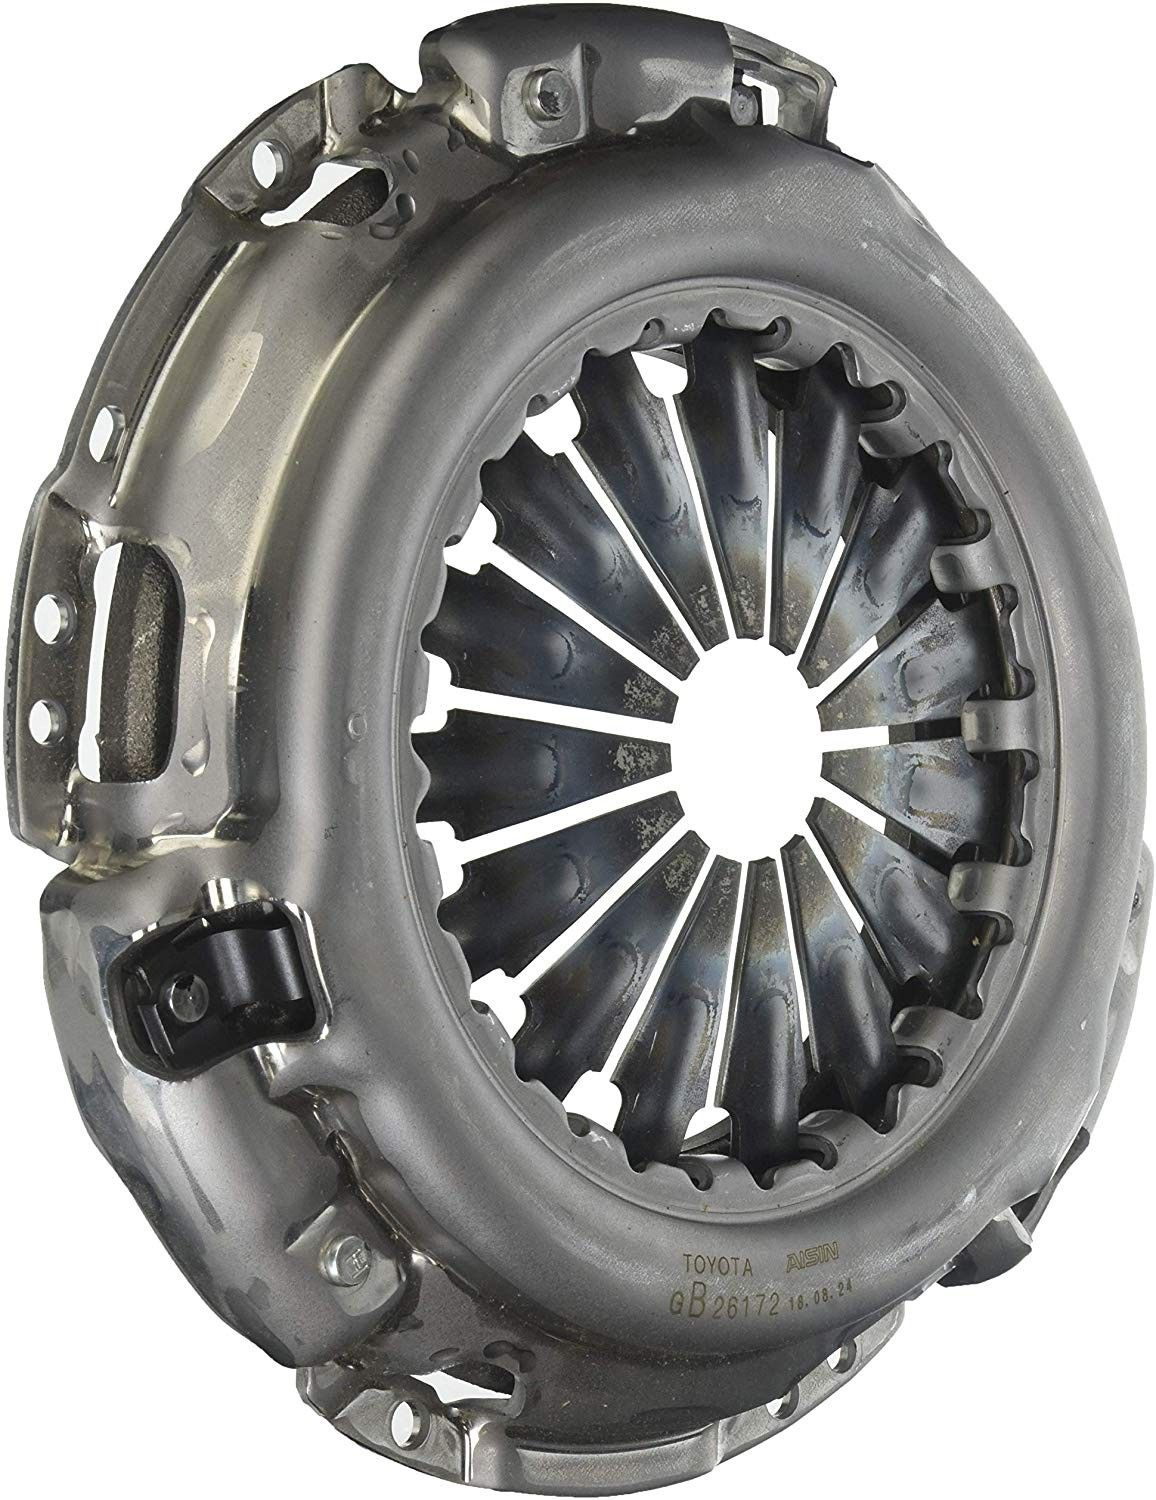 Luk Clutch Pressure Plate For Ashok Leyland Boss 1412 LE 330 - 1330249100